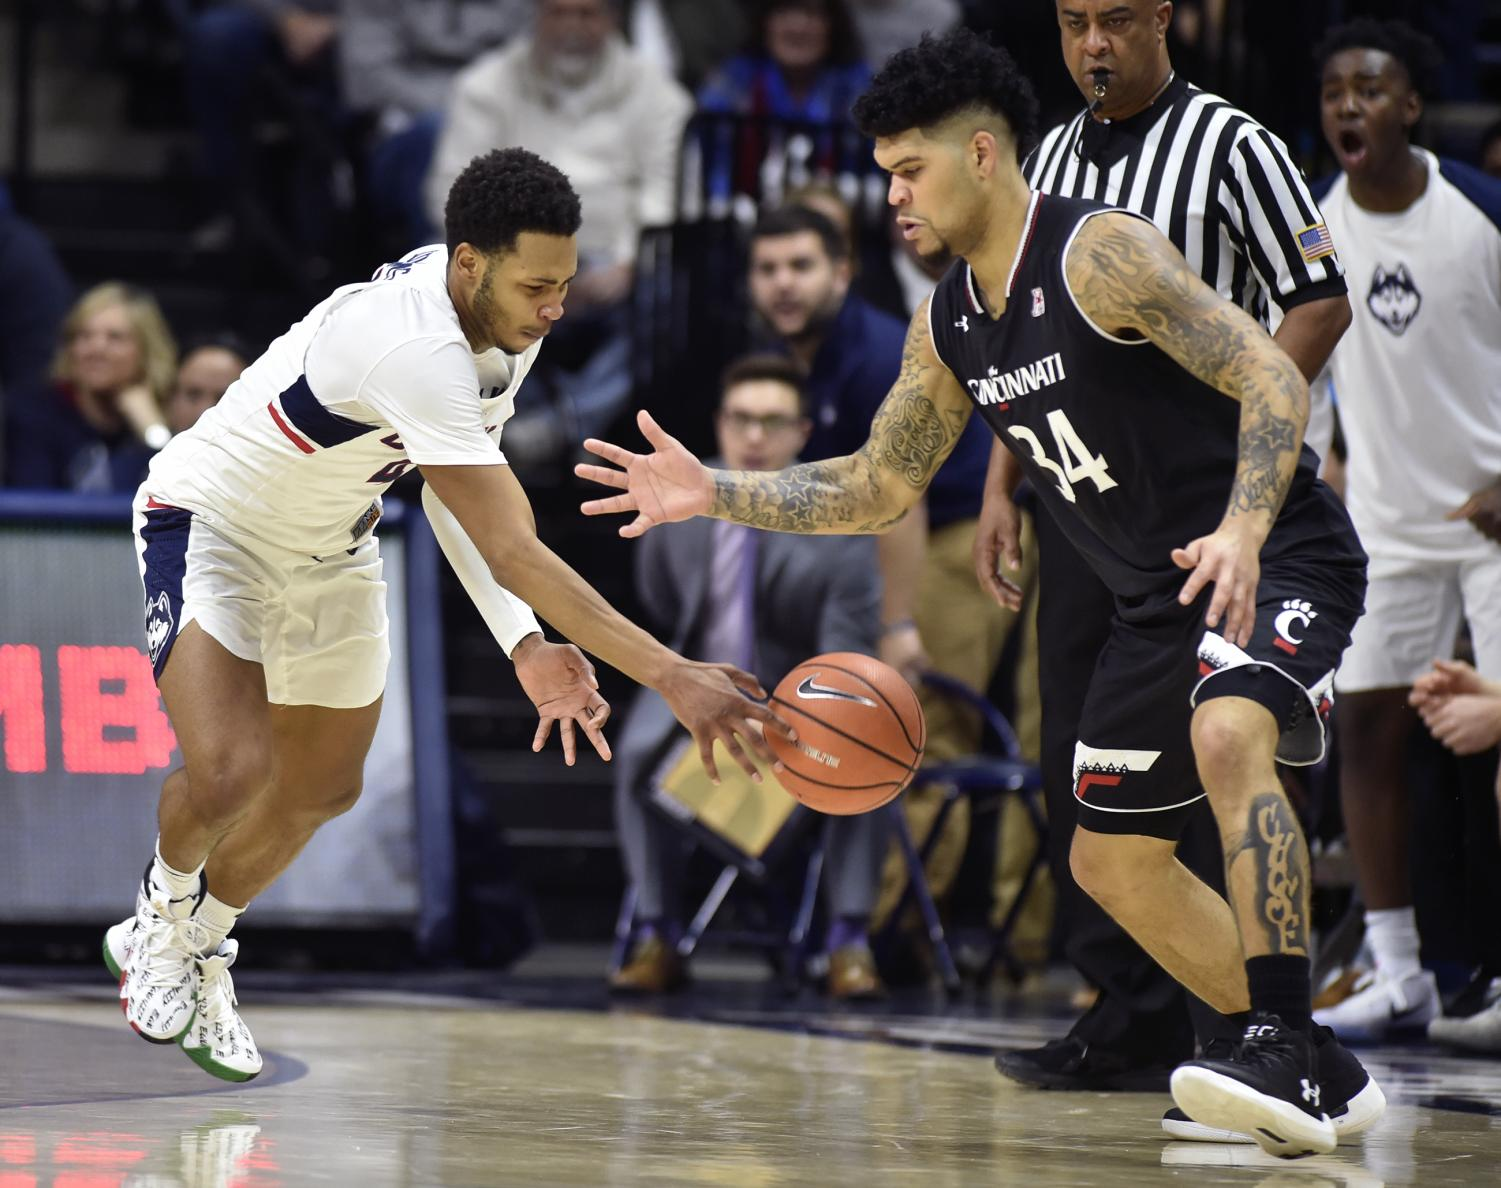 Connecticut's Jalen Adams (4) steals the ball from Cincinnati's Jarron Cumberland (34) at Gampel Pavilion in Storrs, Conn., on Saturday, Feb. 3, 2018. The visiting Bearcats won, 65-57.